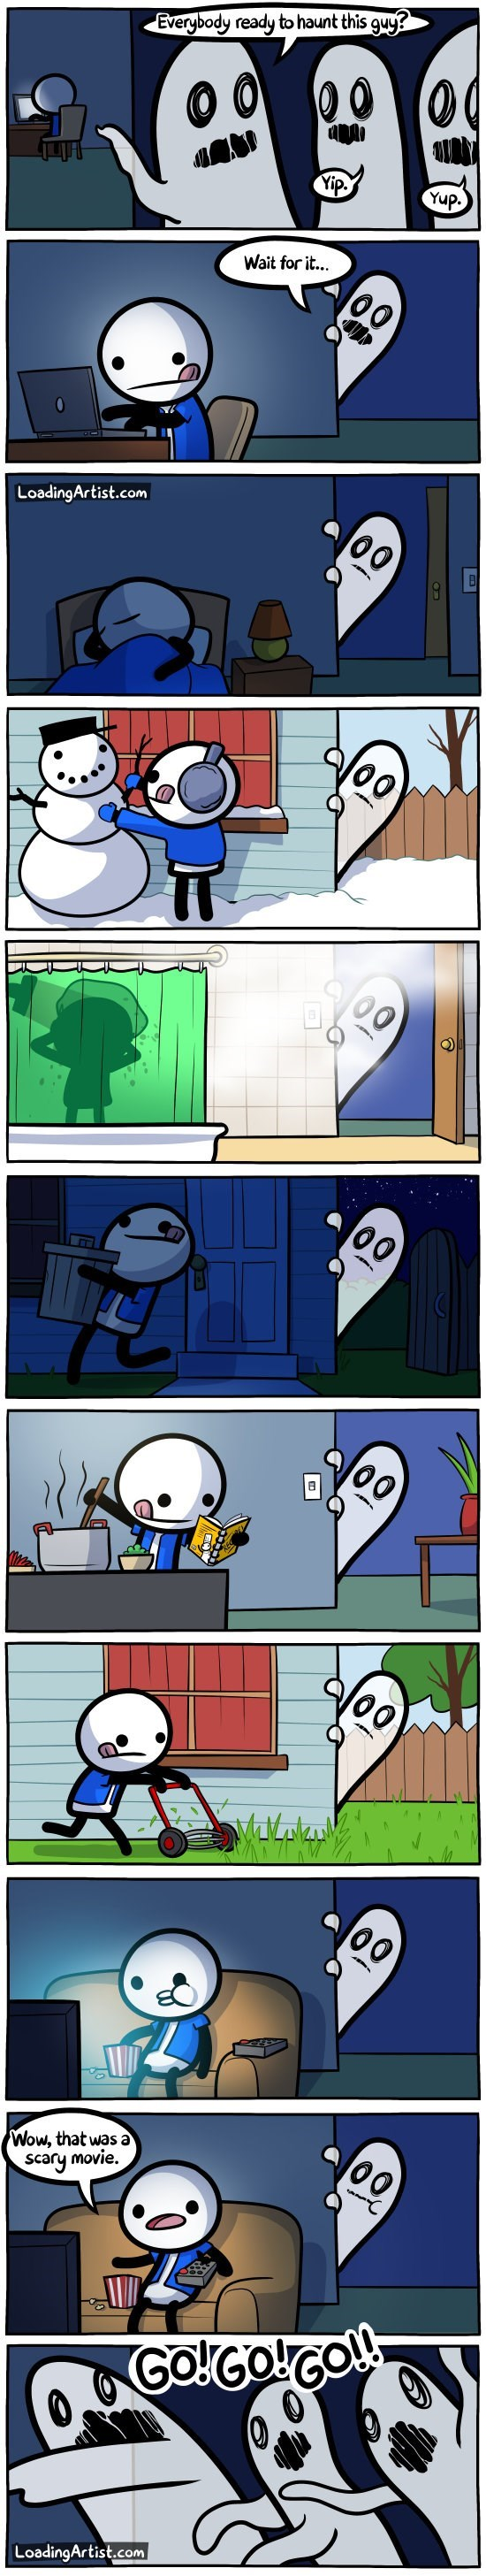 ghosts web comics Timing is Everything